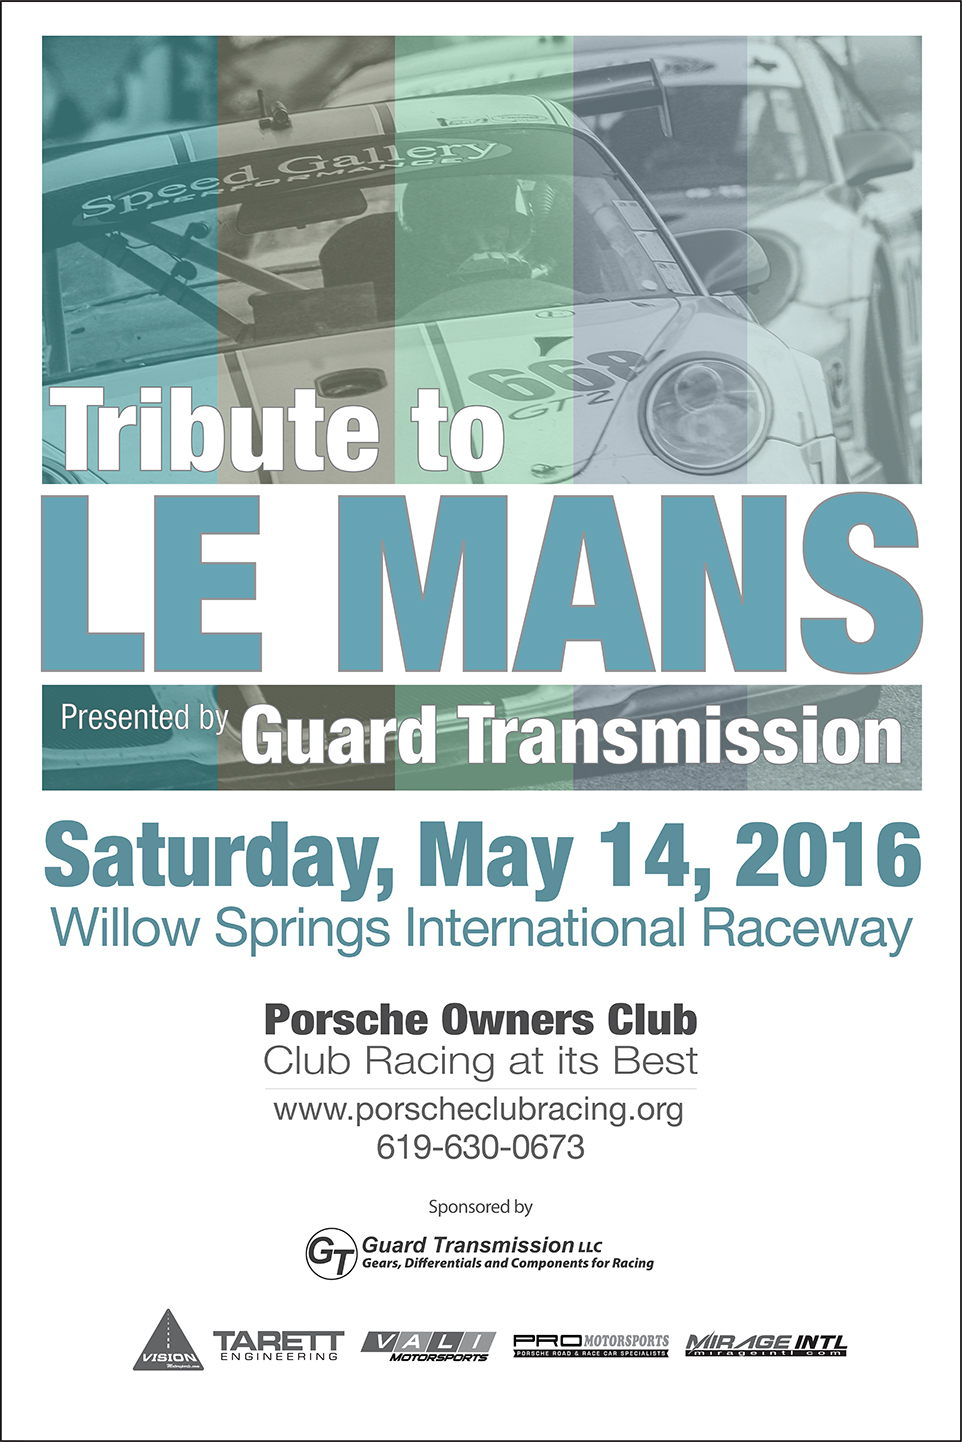 2016 POC Tribute to LeMans Sponsored by Guard Transmission